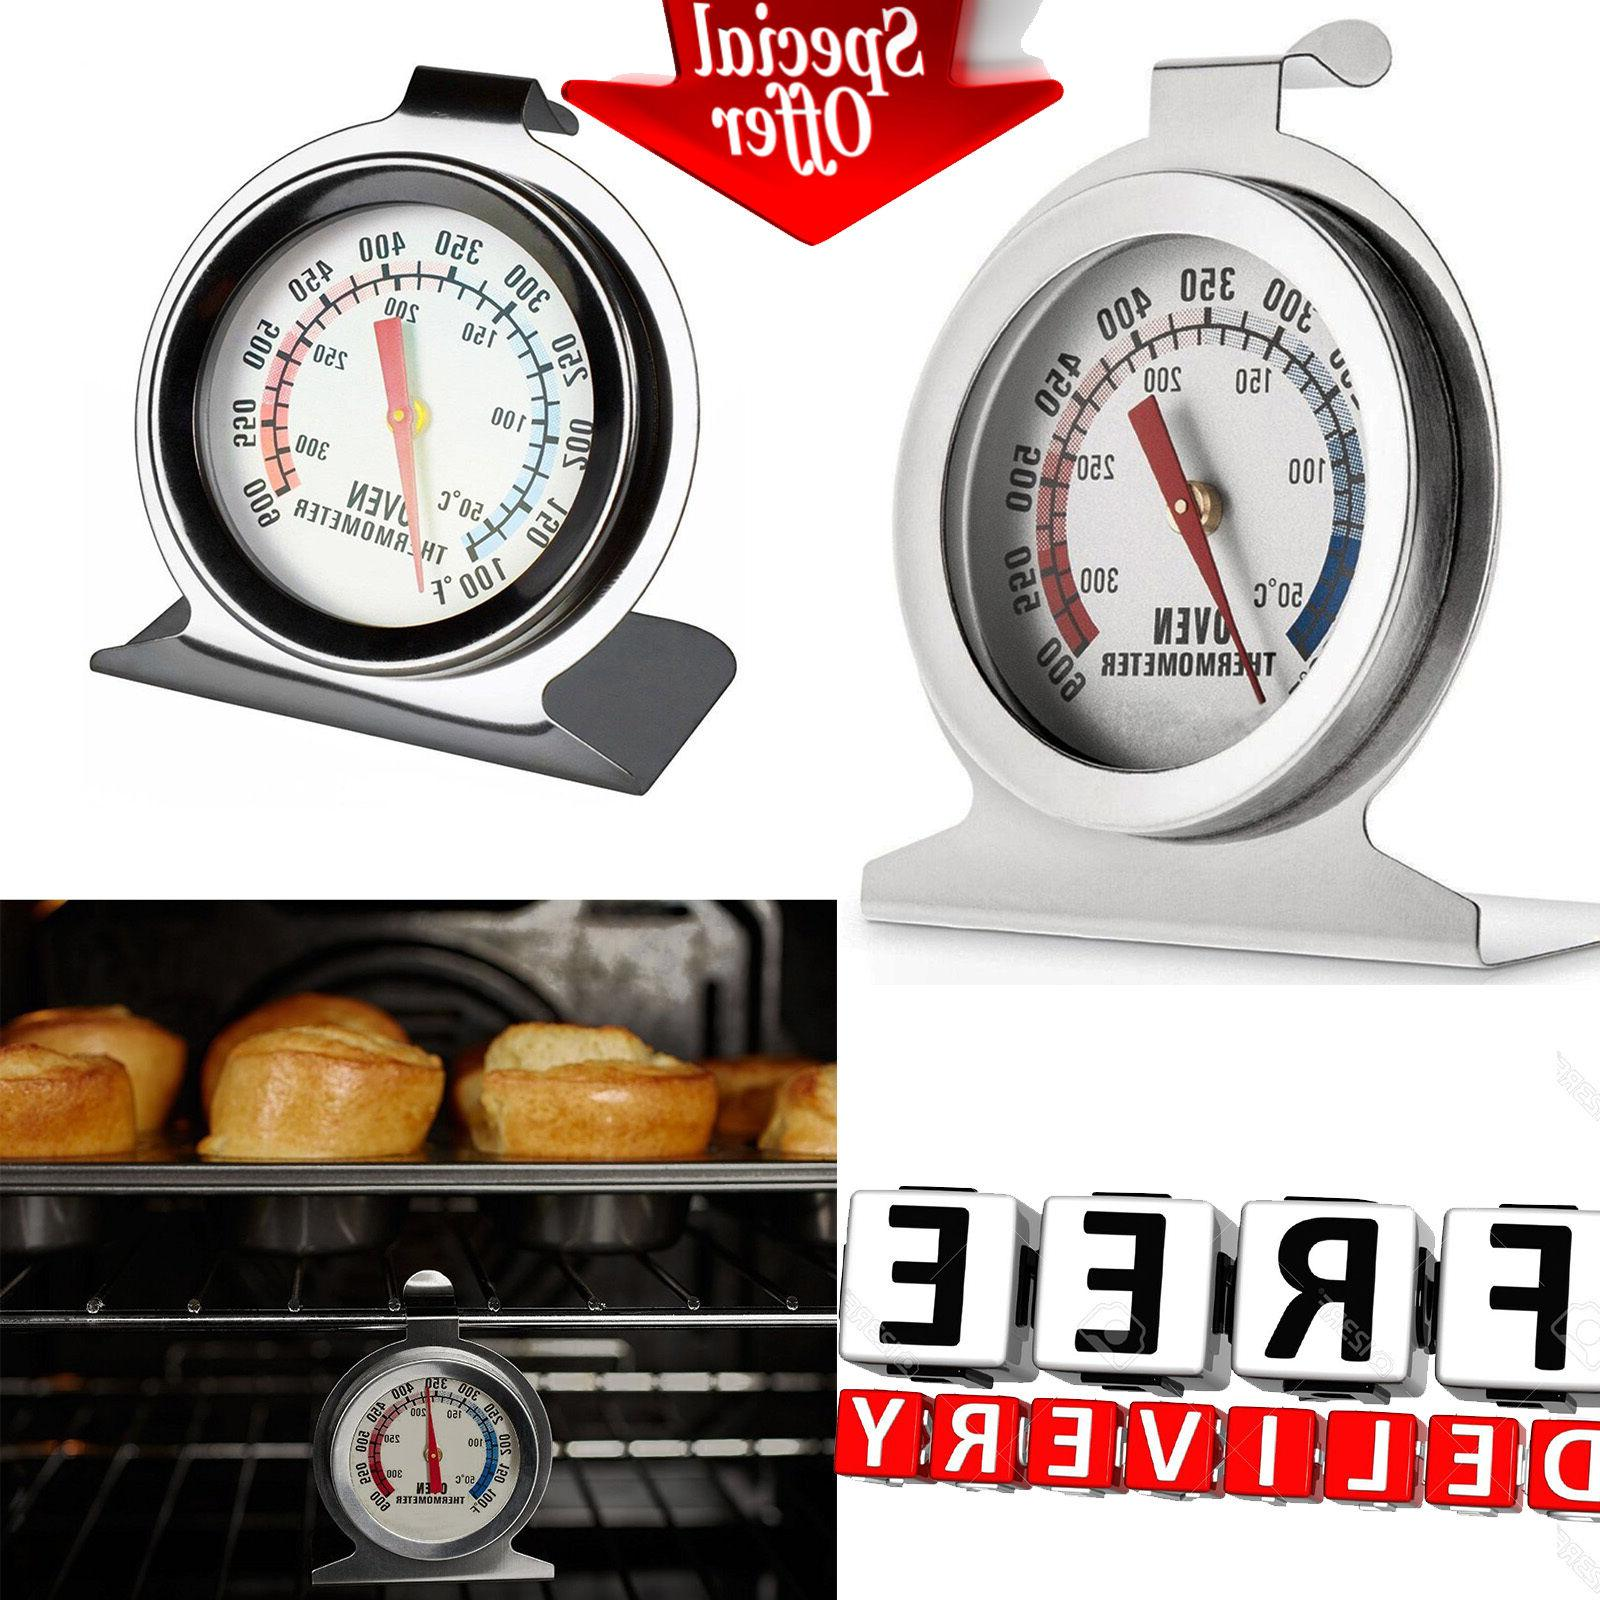 Grill Thermometer Stainless Steel Smoker Cooker Outdoor ...